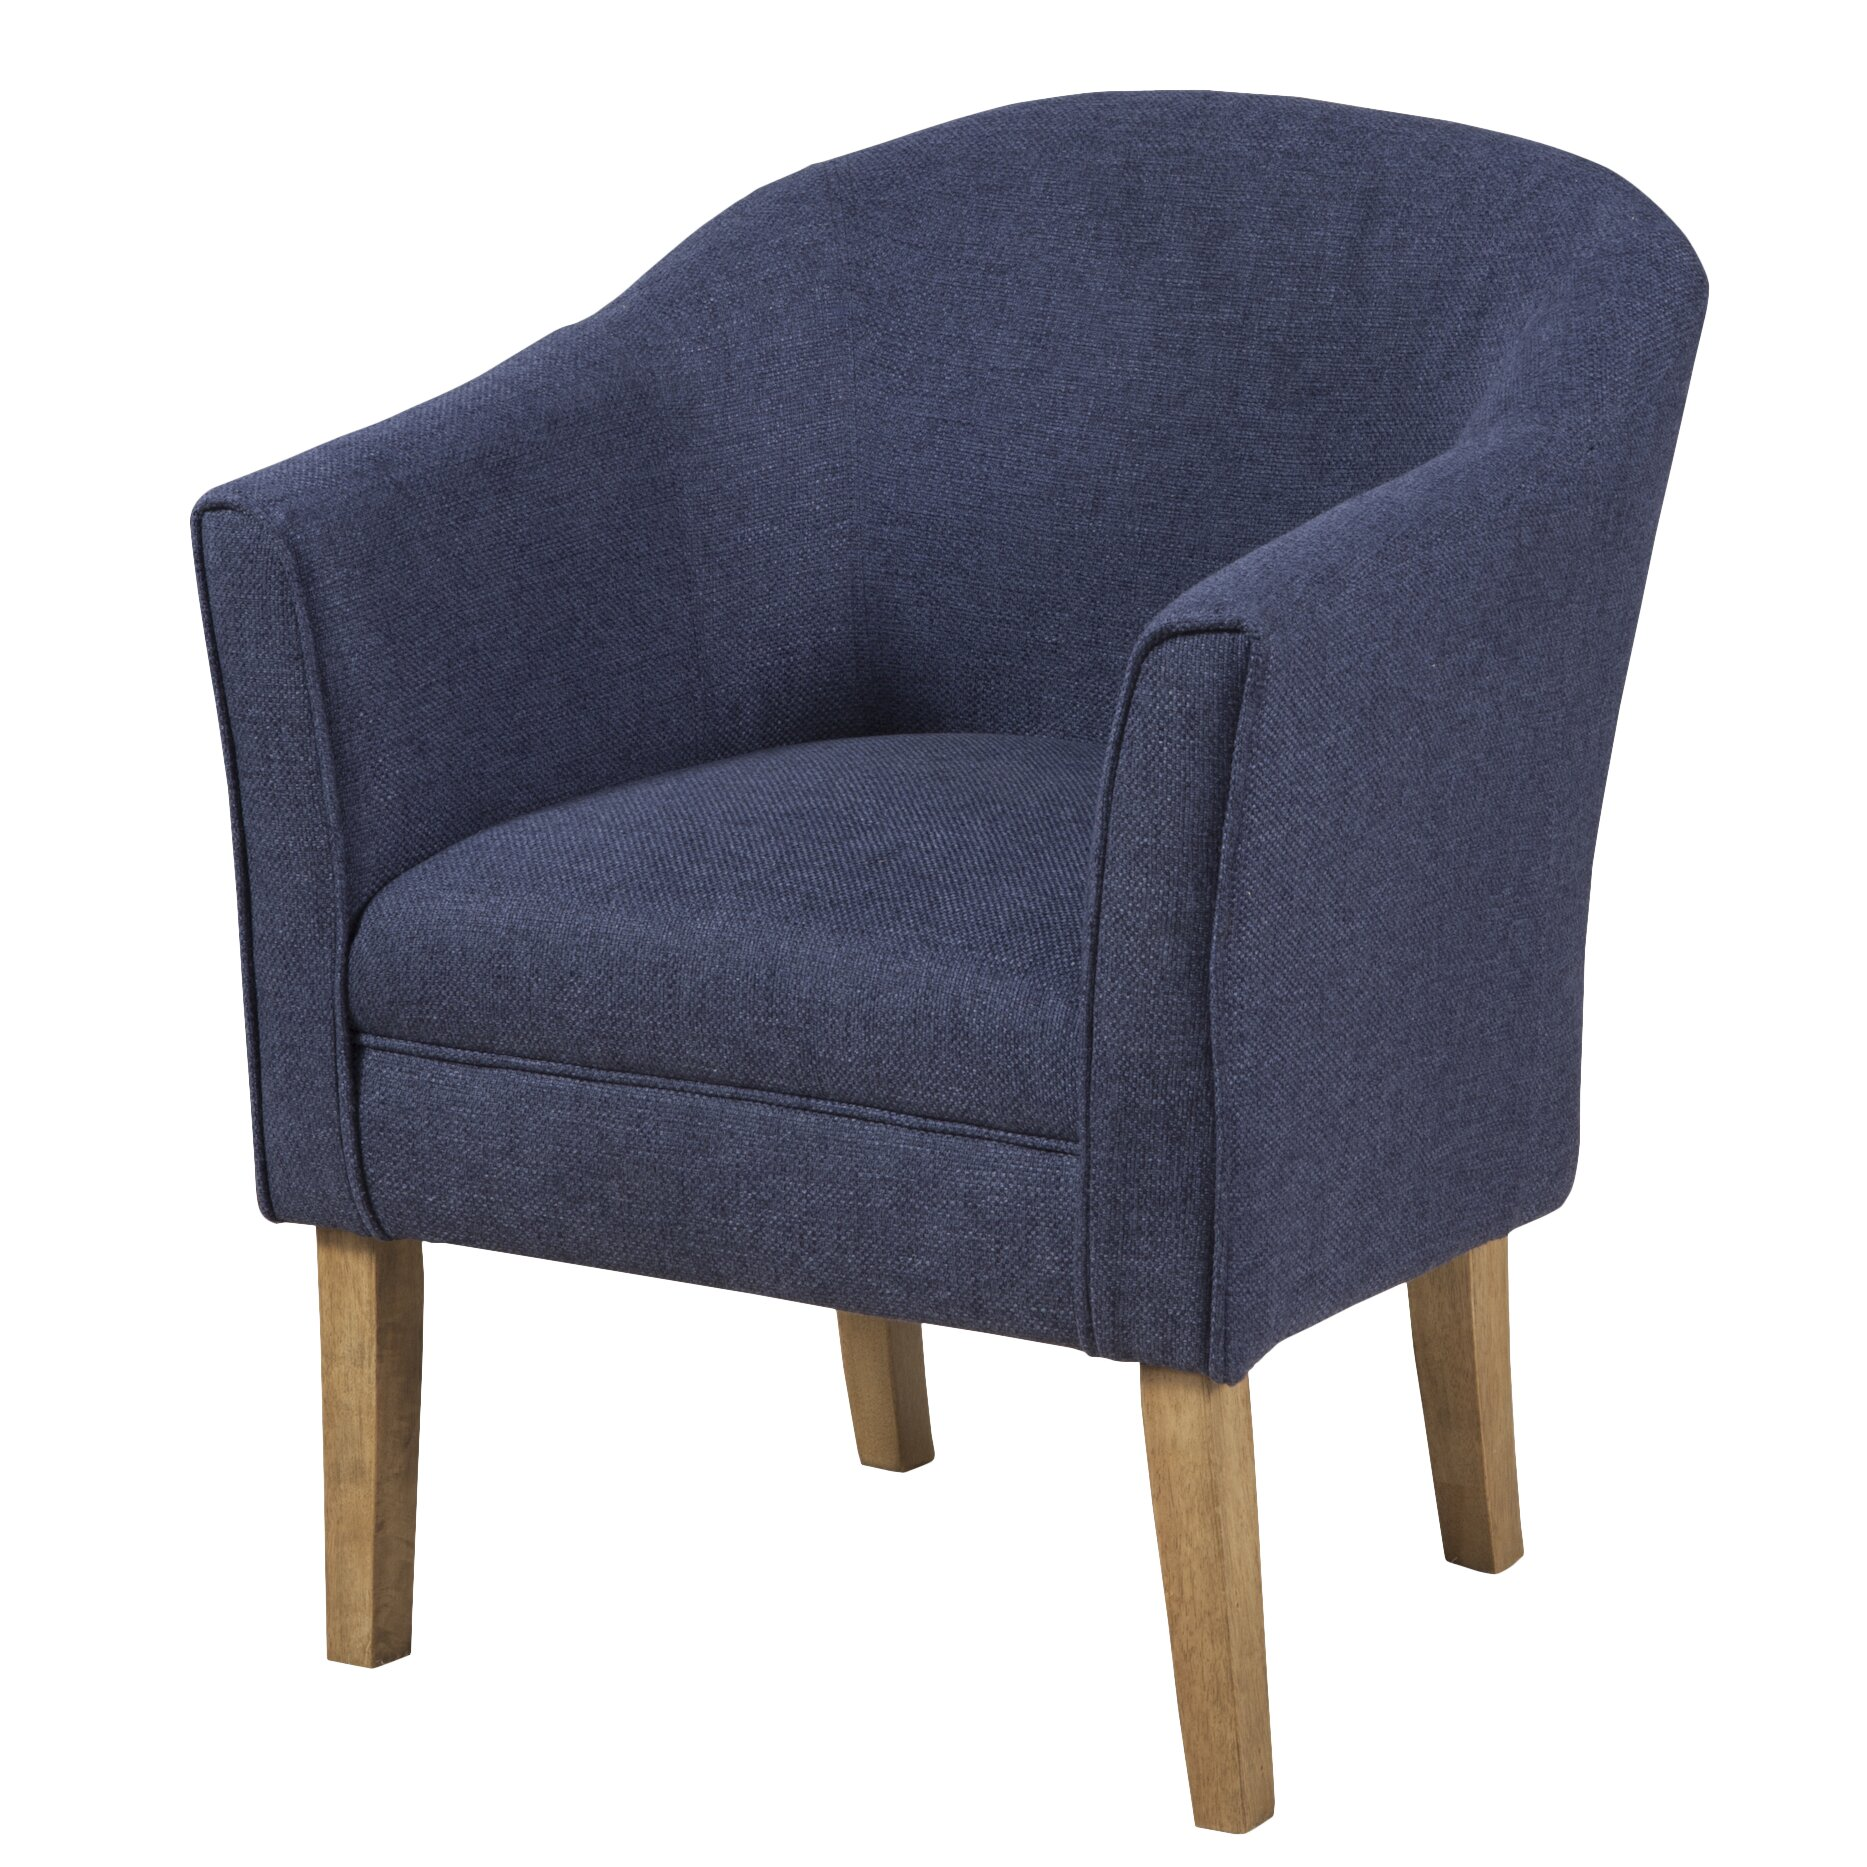 HomePop Upholstered Barrel Chair & Reviews | Wayfair